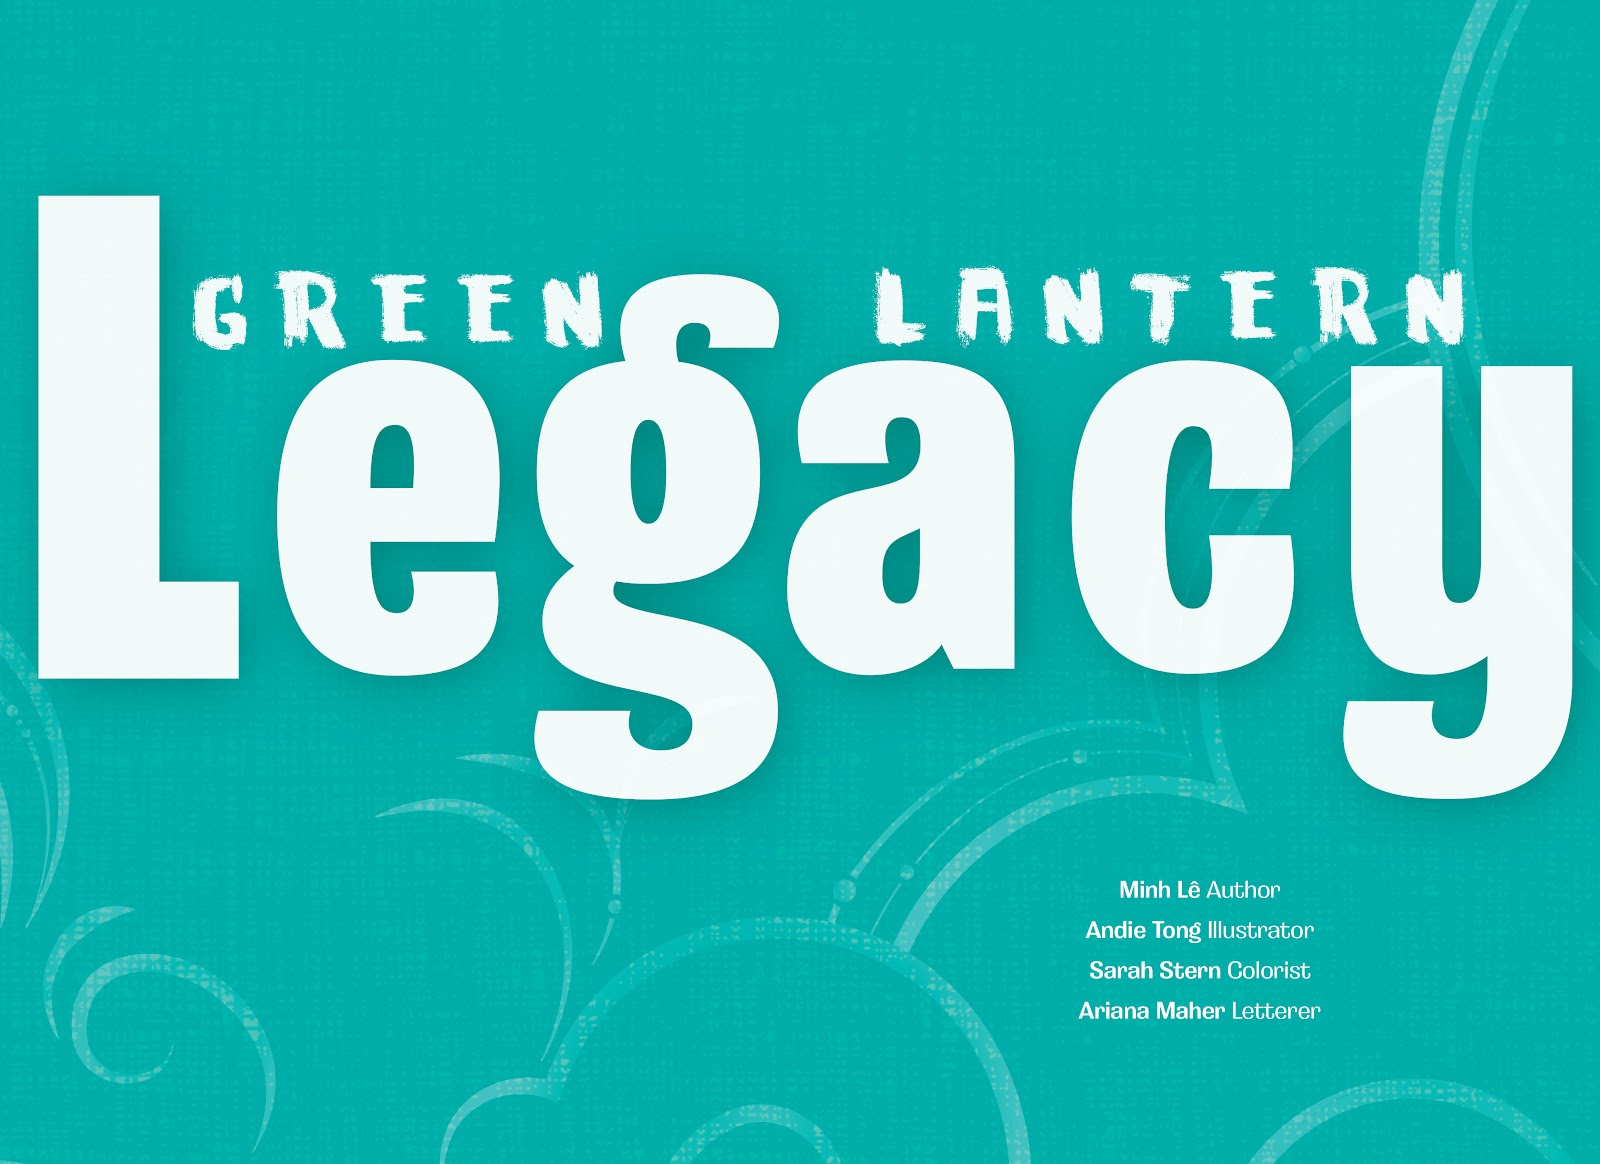 Read online Green Lantern: Legacy comic -  Issue # TPB - 3